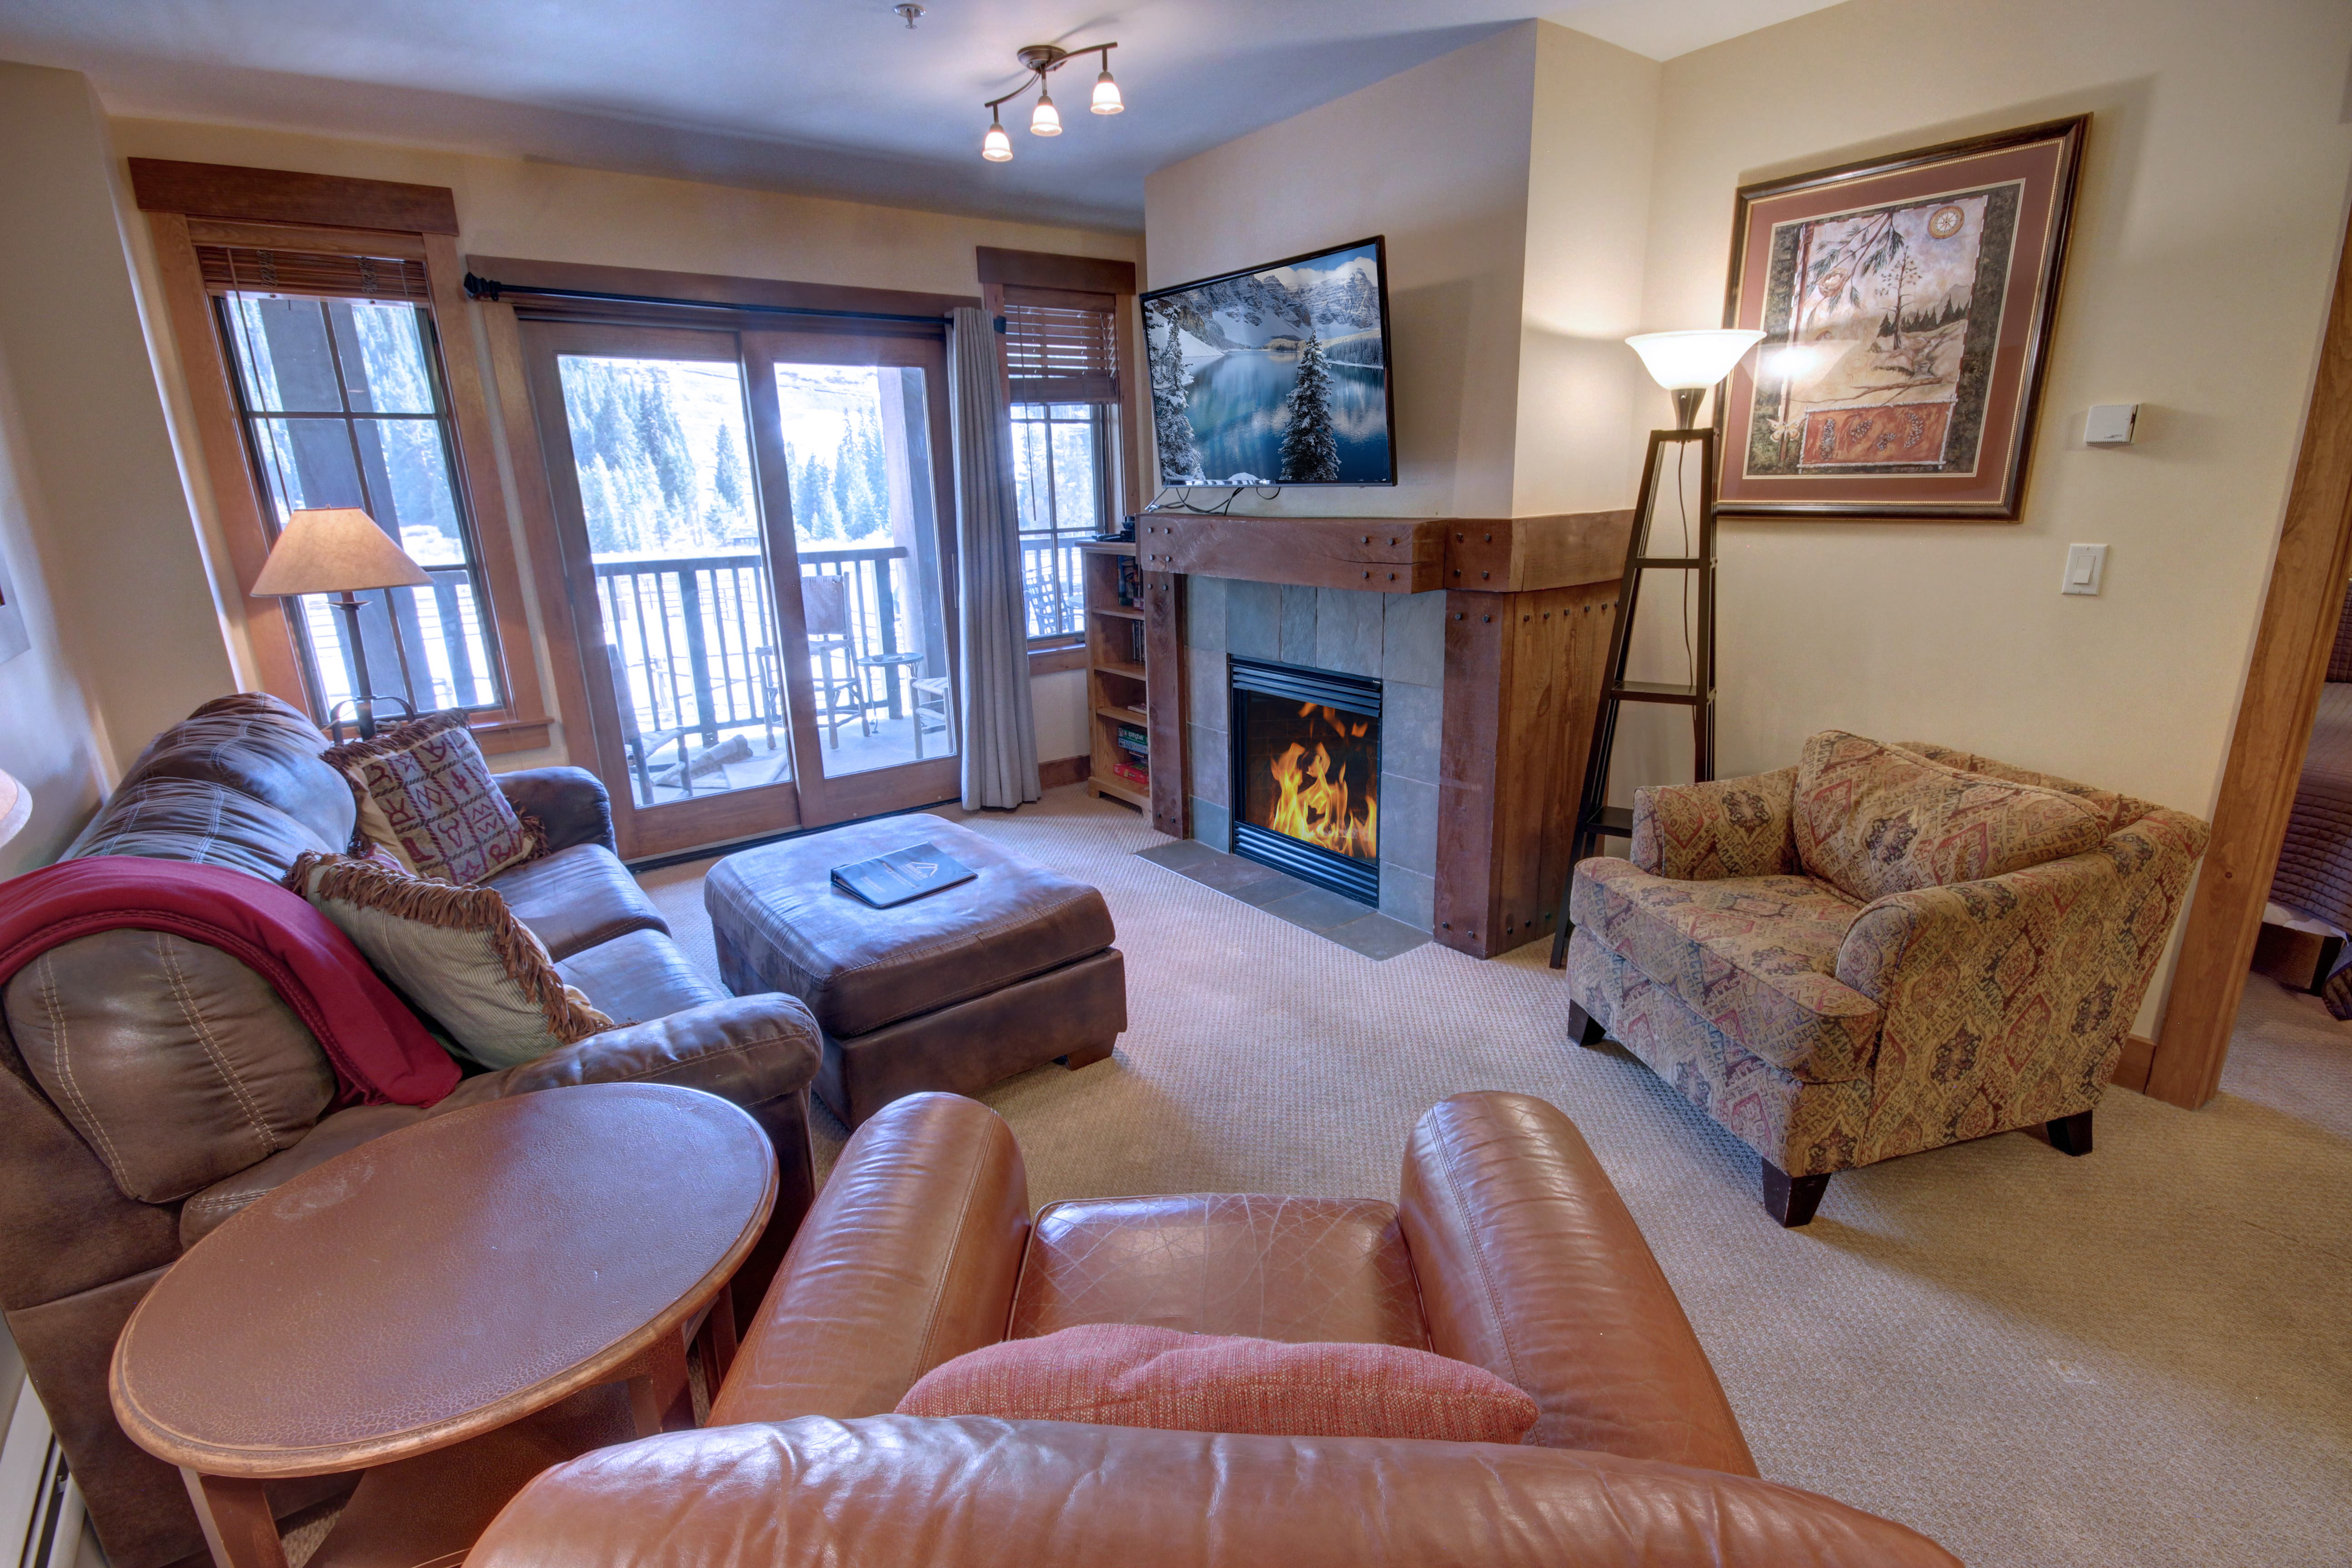 A open living room with a great view of the mountains with patio access